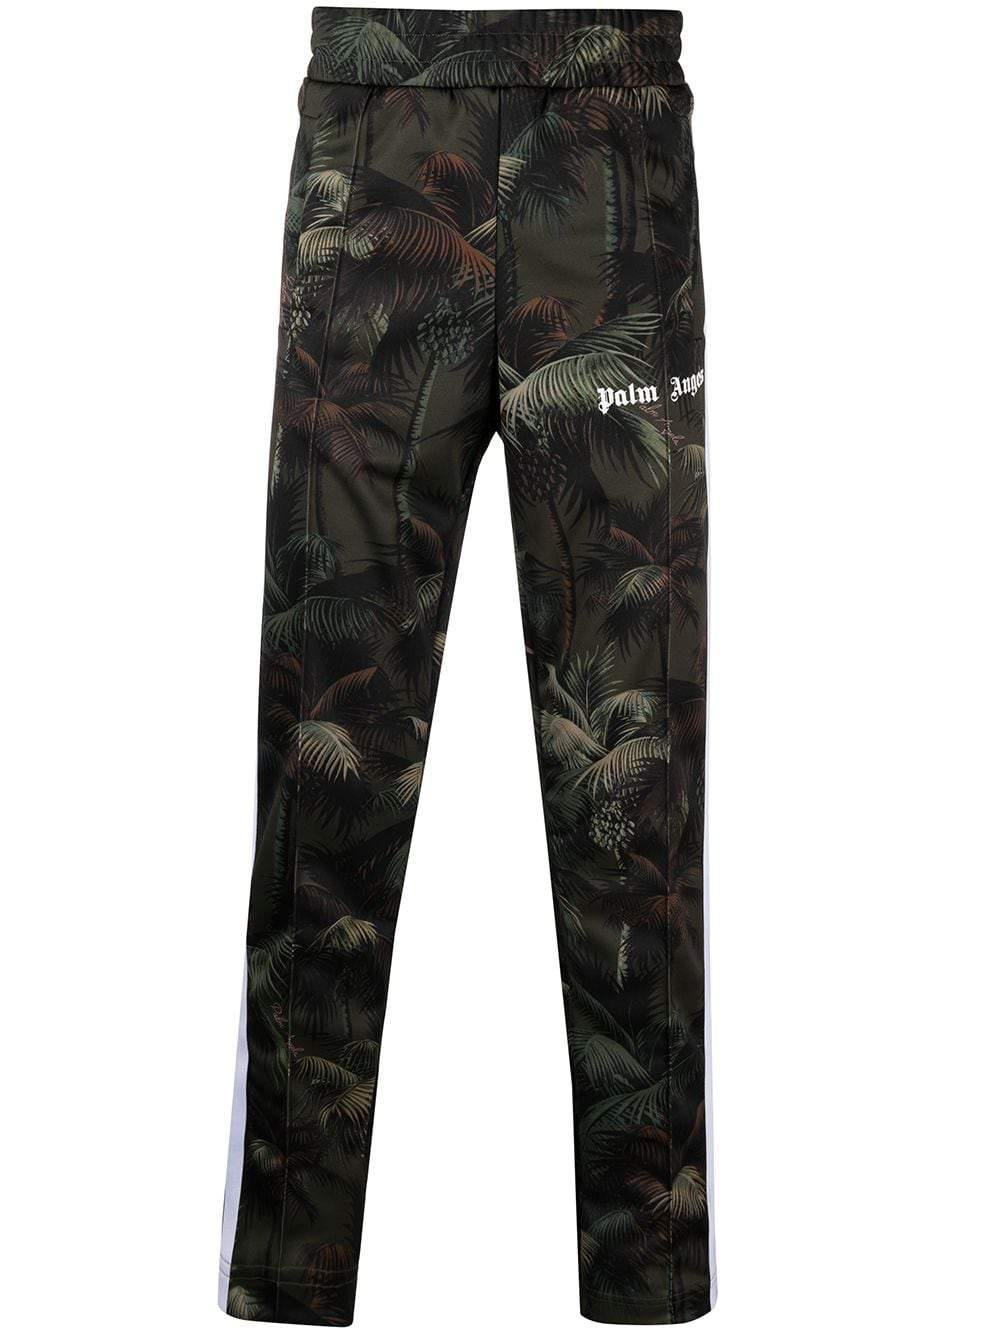 PALM ANGELS Jungle Logo Track Pants